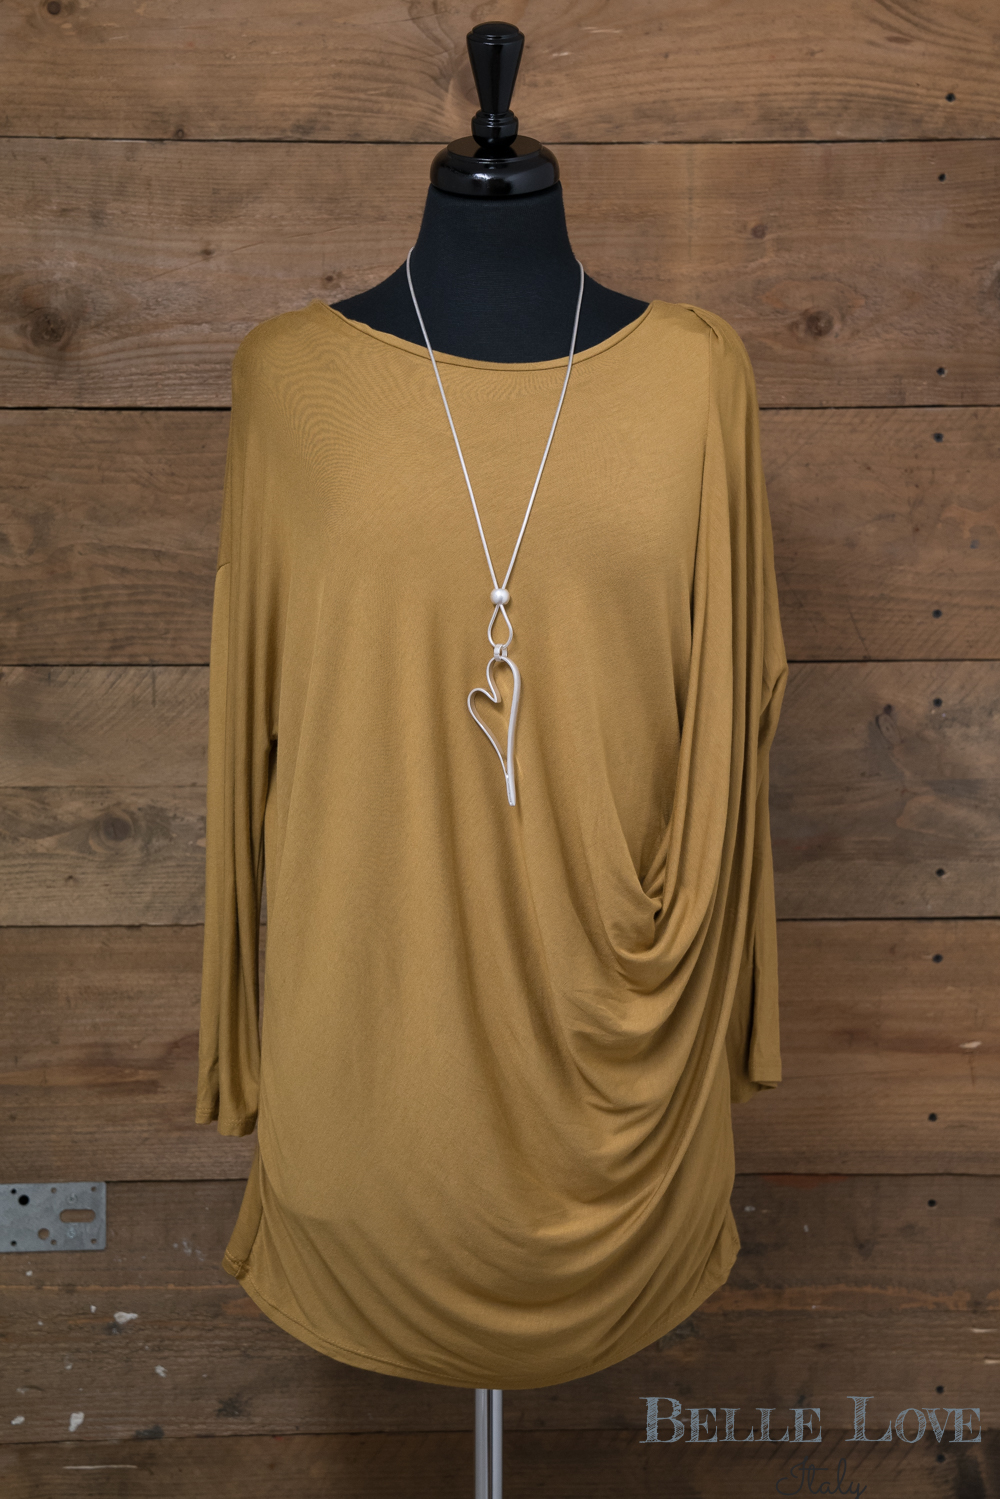 Belle Love Italy Rouched Top